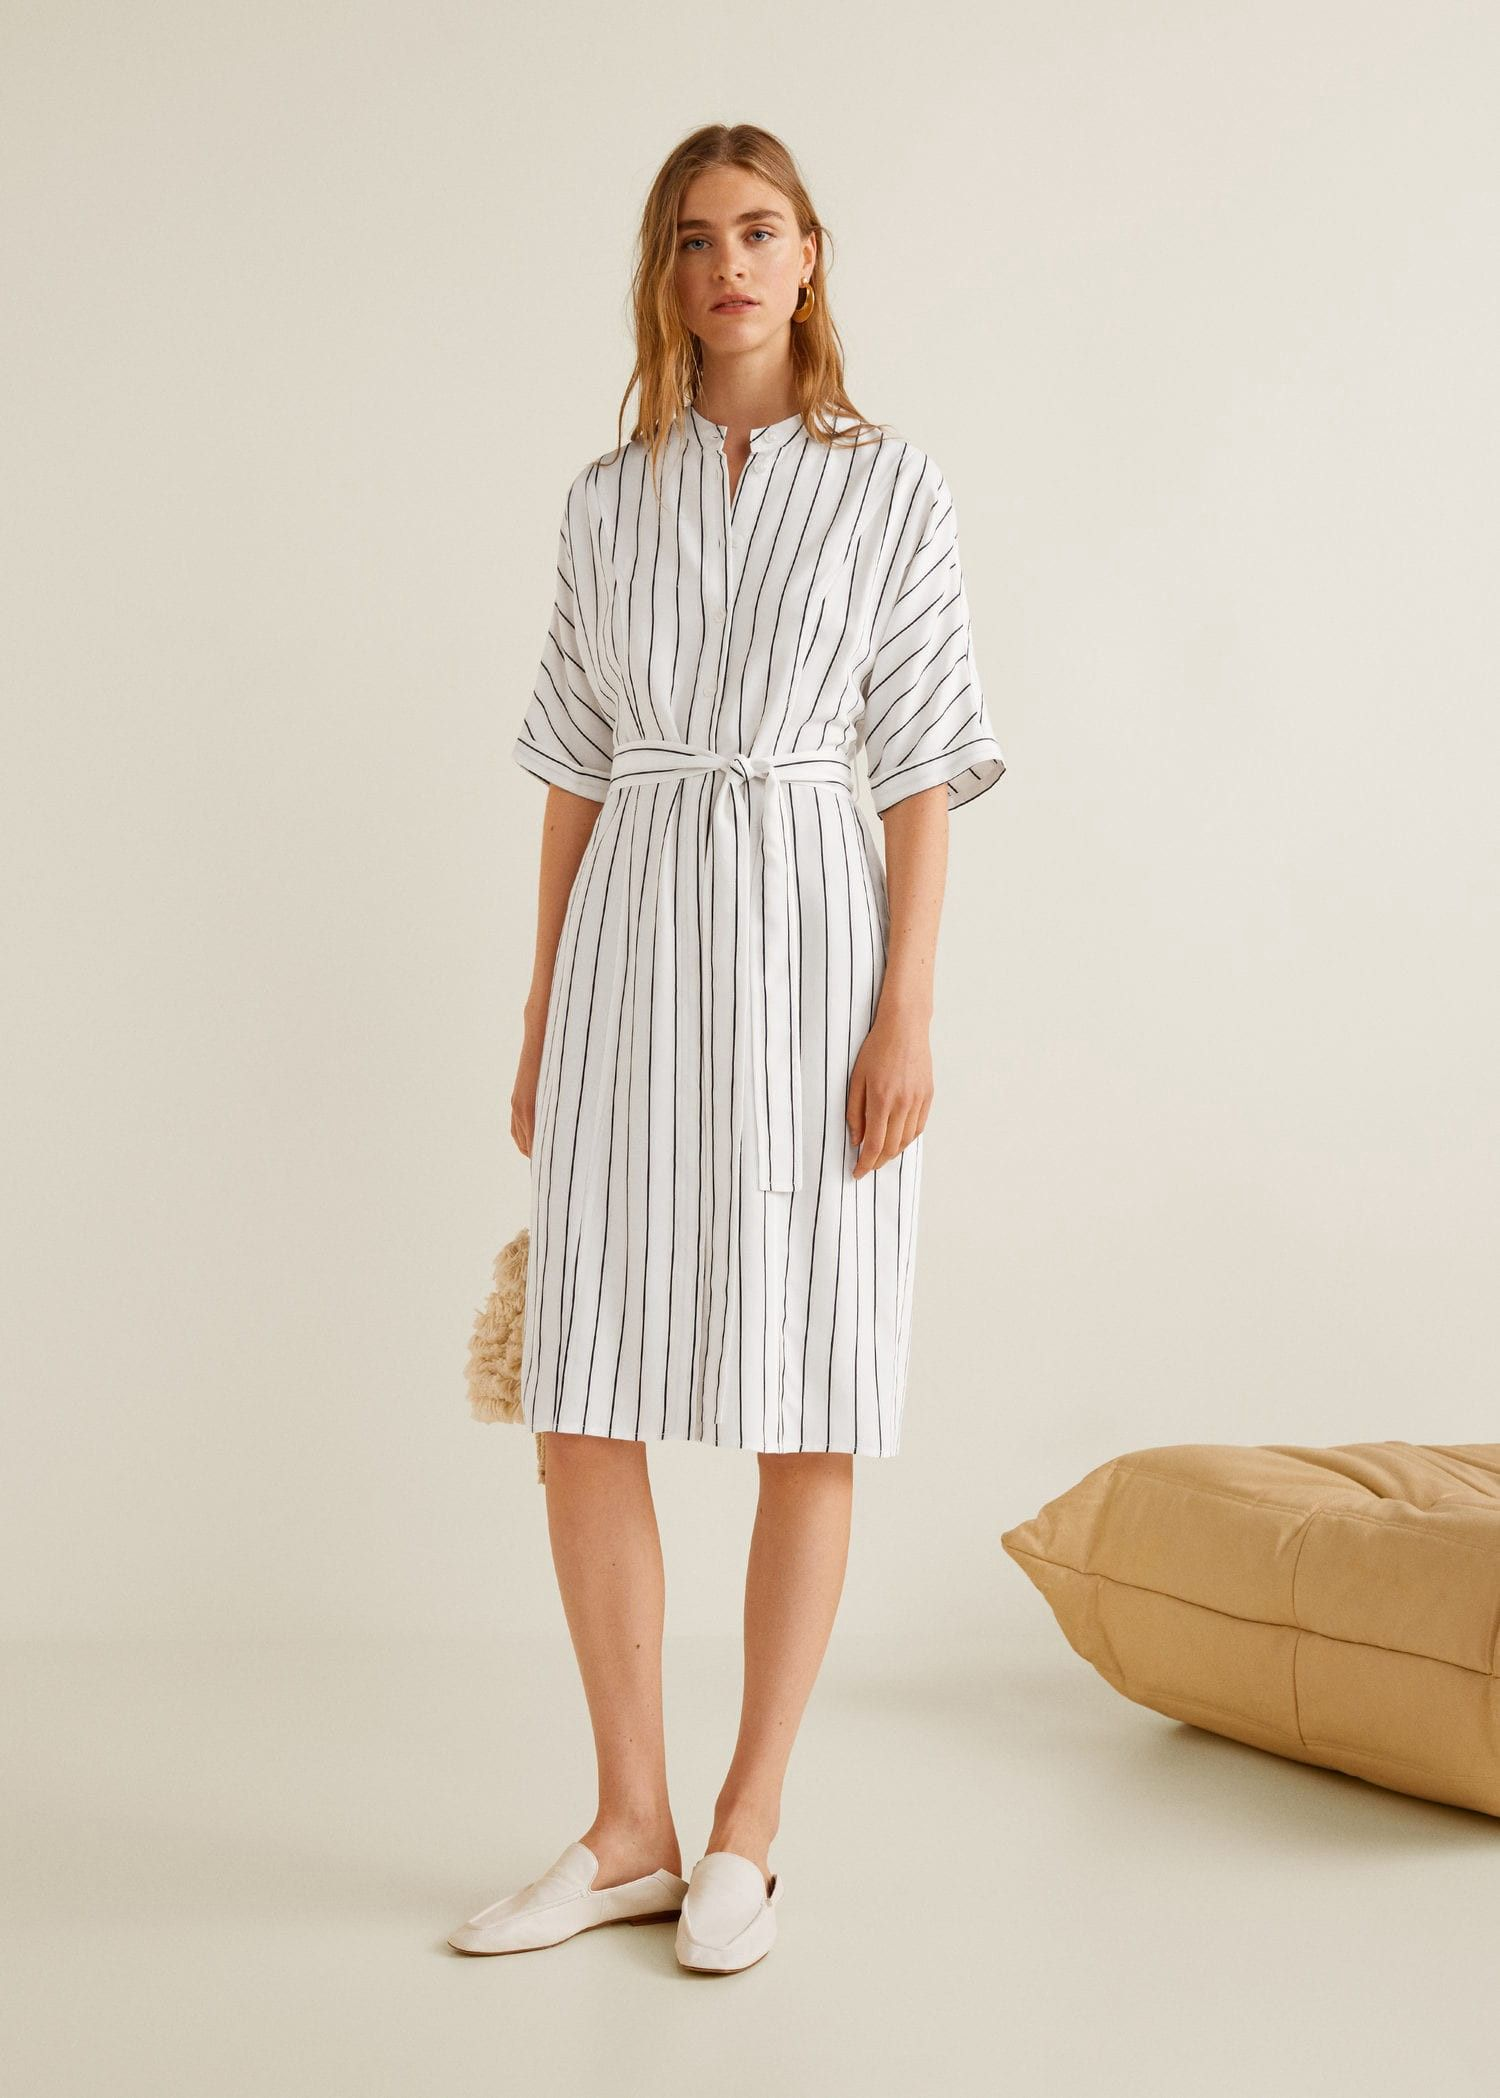 51b36c81adbc Mango Striped Shirt Dress - Off White 2 in 2019 | Products | Striped ...